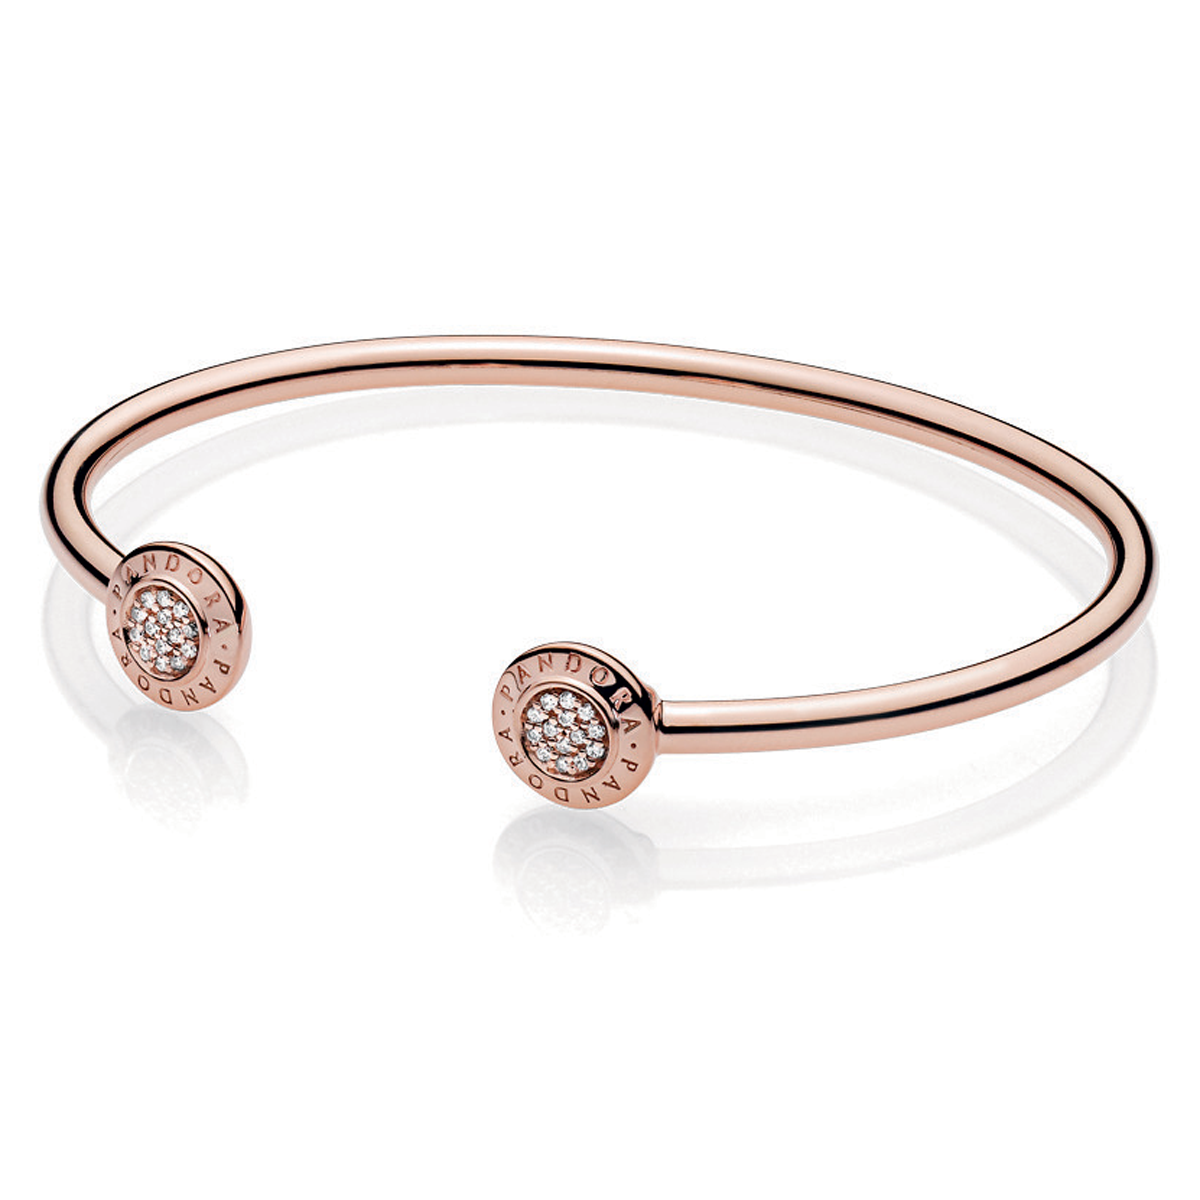 Pandora Rose Signature Open Bangle Bracelet